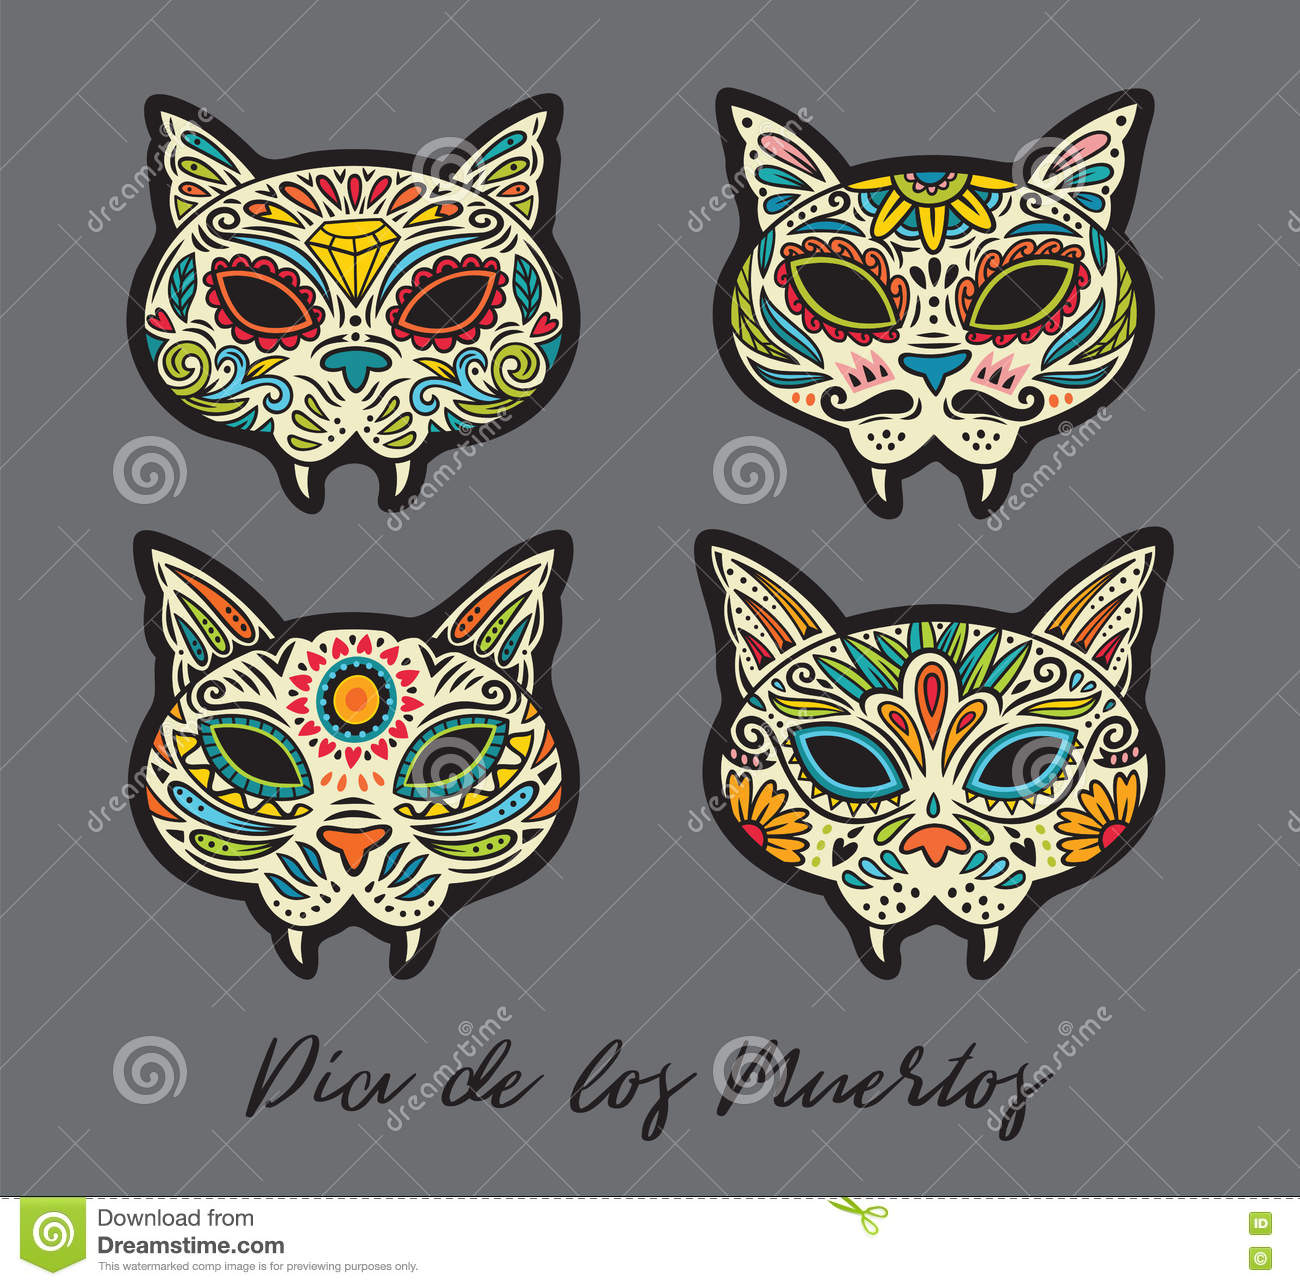 Greeting Card With Sugar Skull Cats Traditional Holiday In Mexico